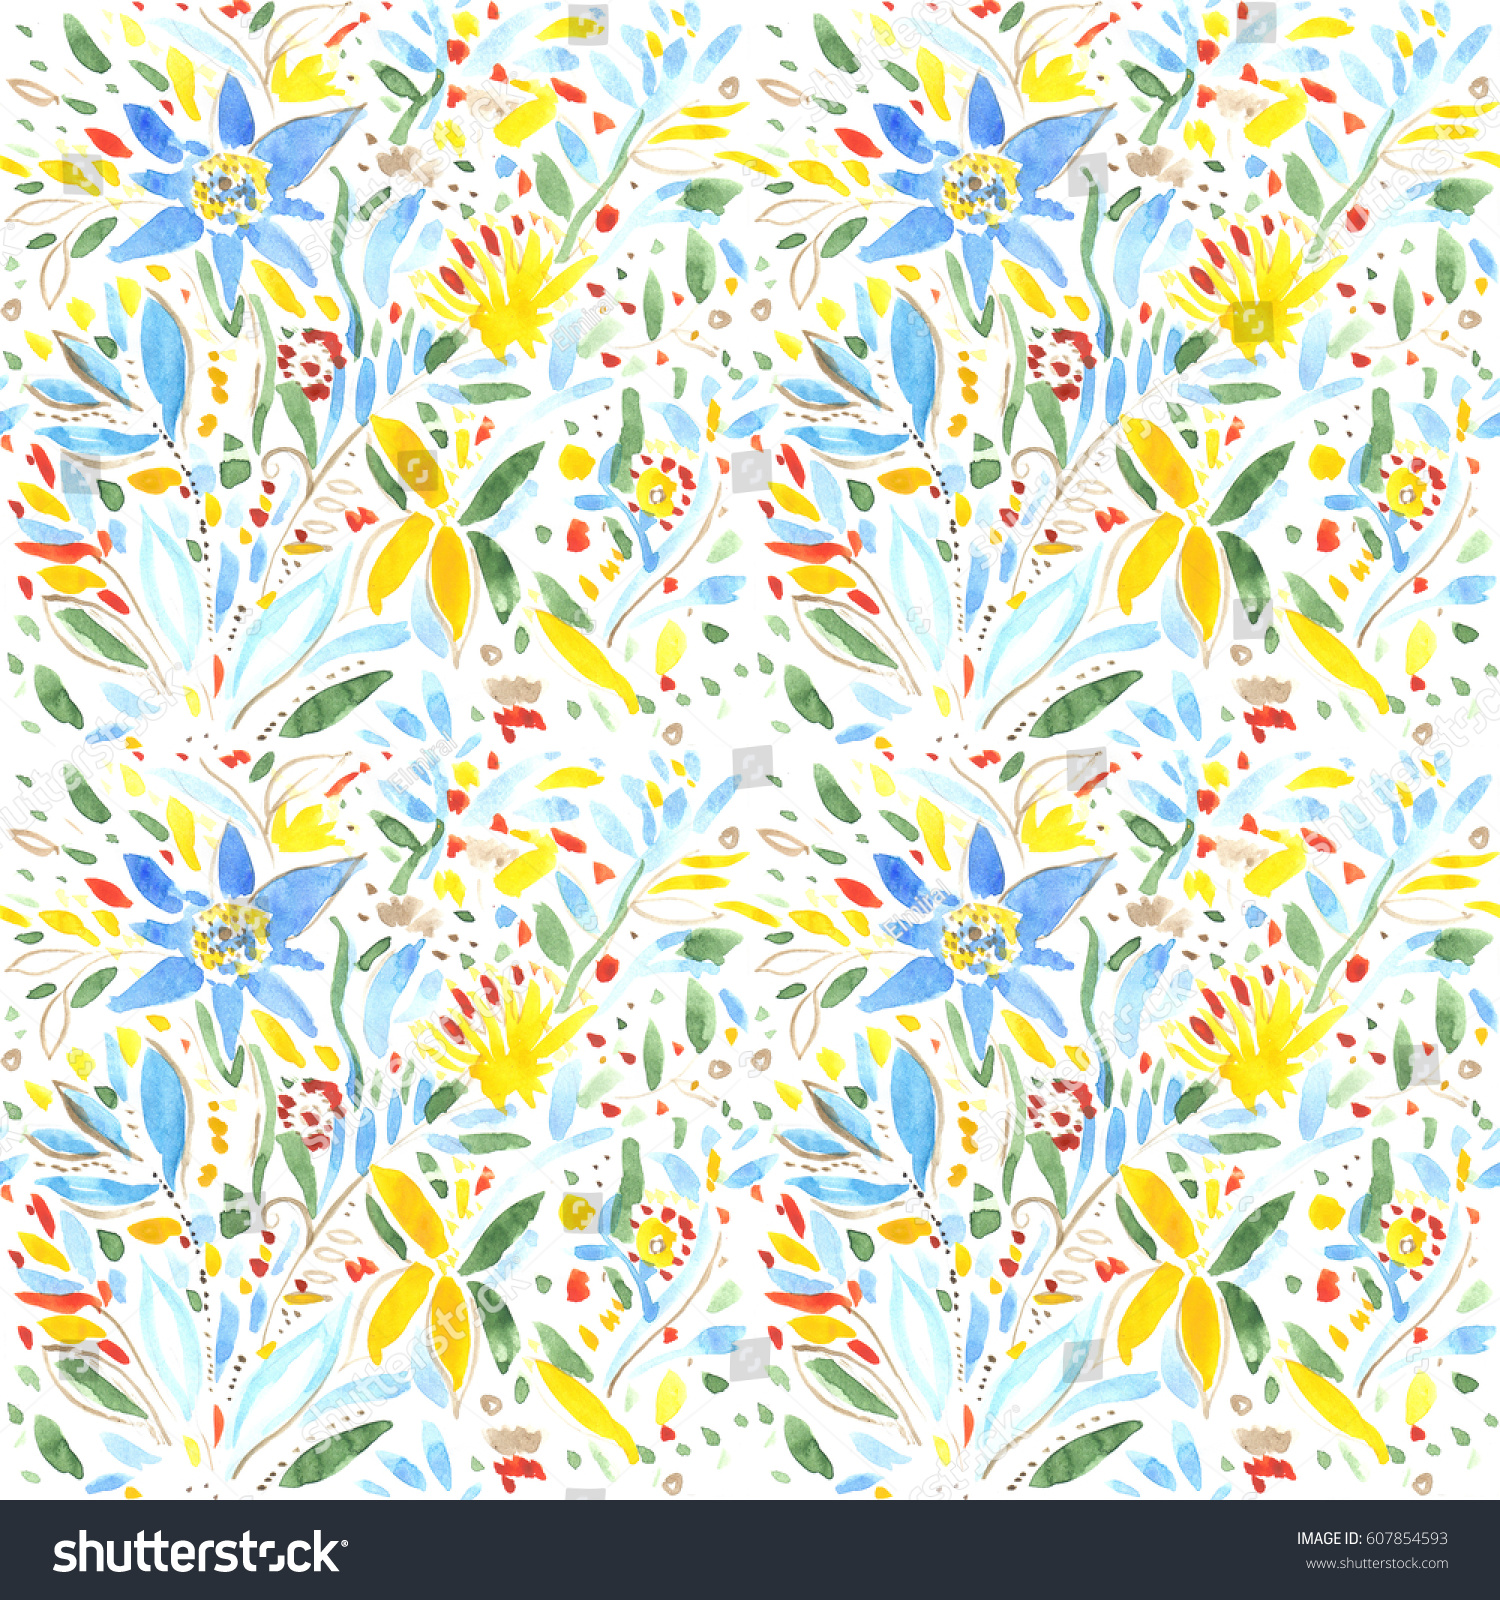 Abstract Spring Summer Flowers Wallpapers Seamless Floral Illustration